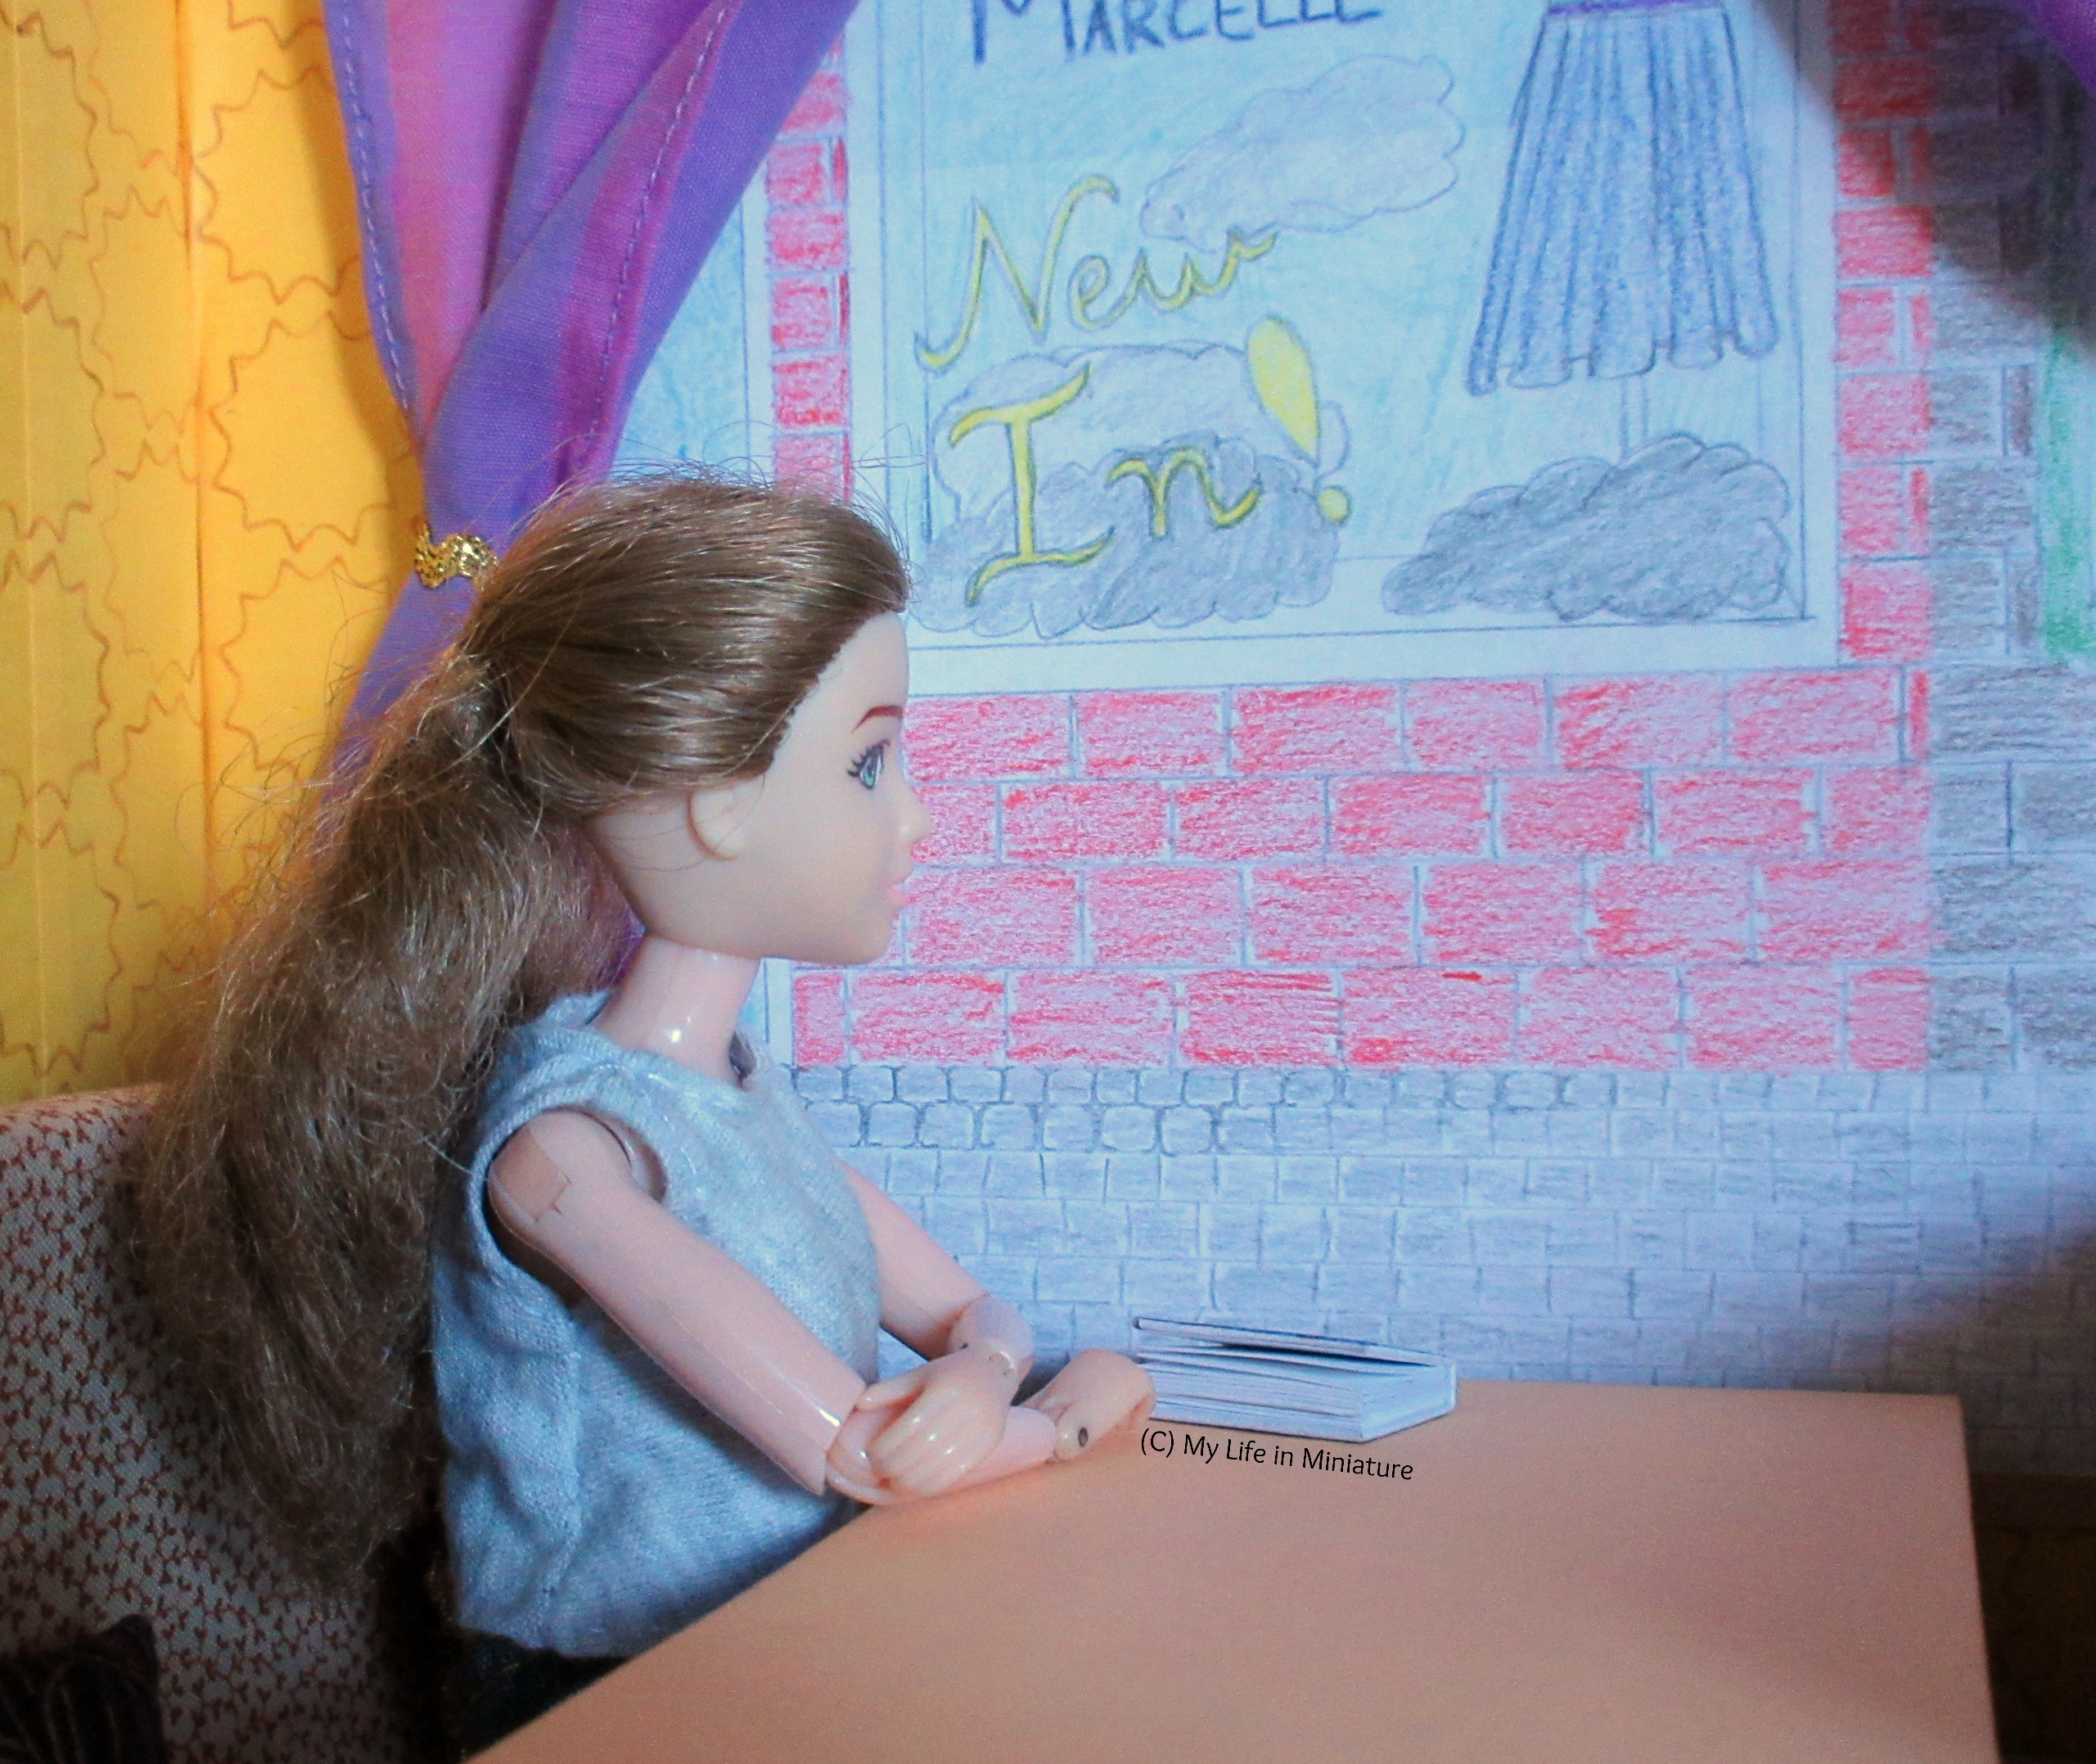 Sarah sits at the booth, looking out the window with arms folded on the table. A curtain is visible behind her.